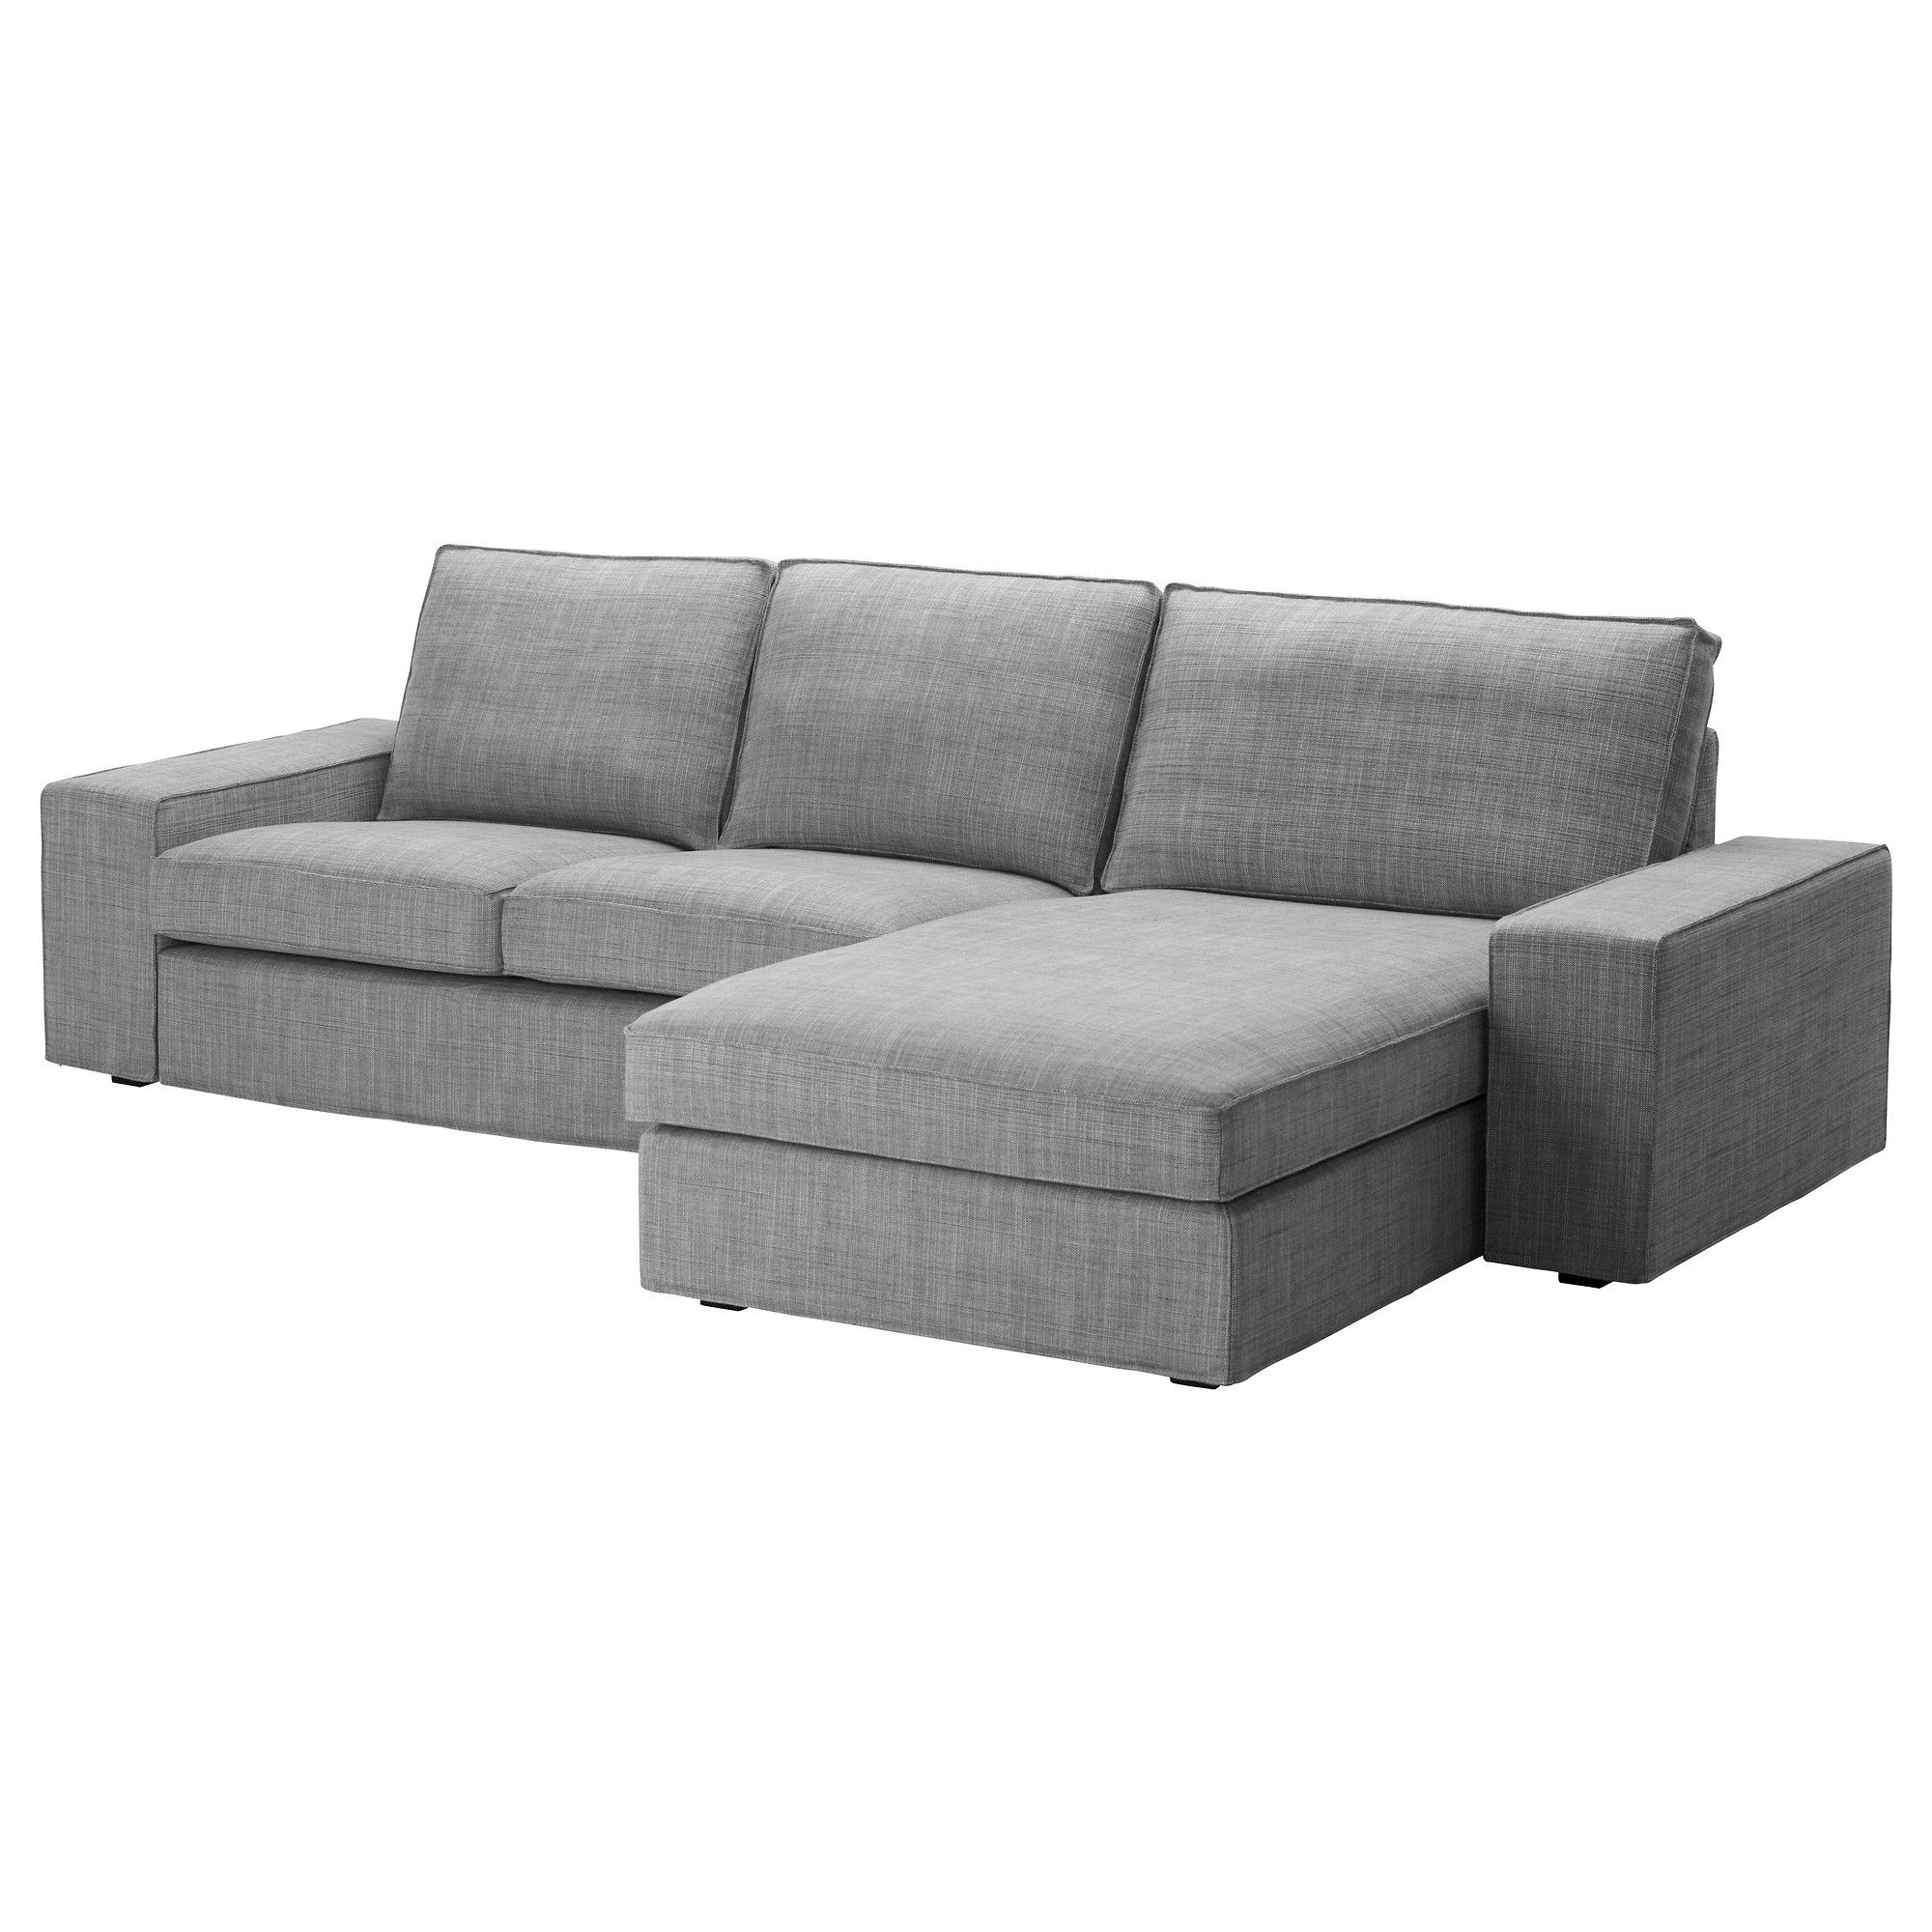 Recamiere ikea  KIVIK Loveseat and chaise lounge - Isunda gray - IKEA $879 | House ...